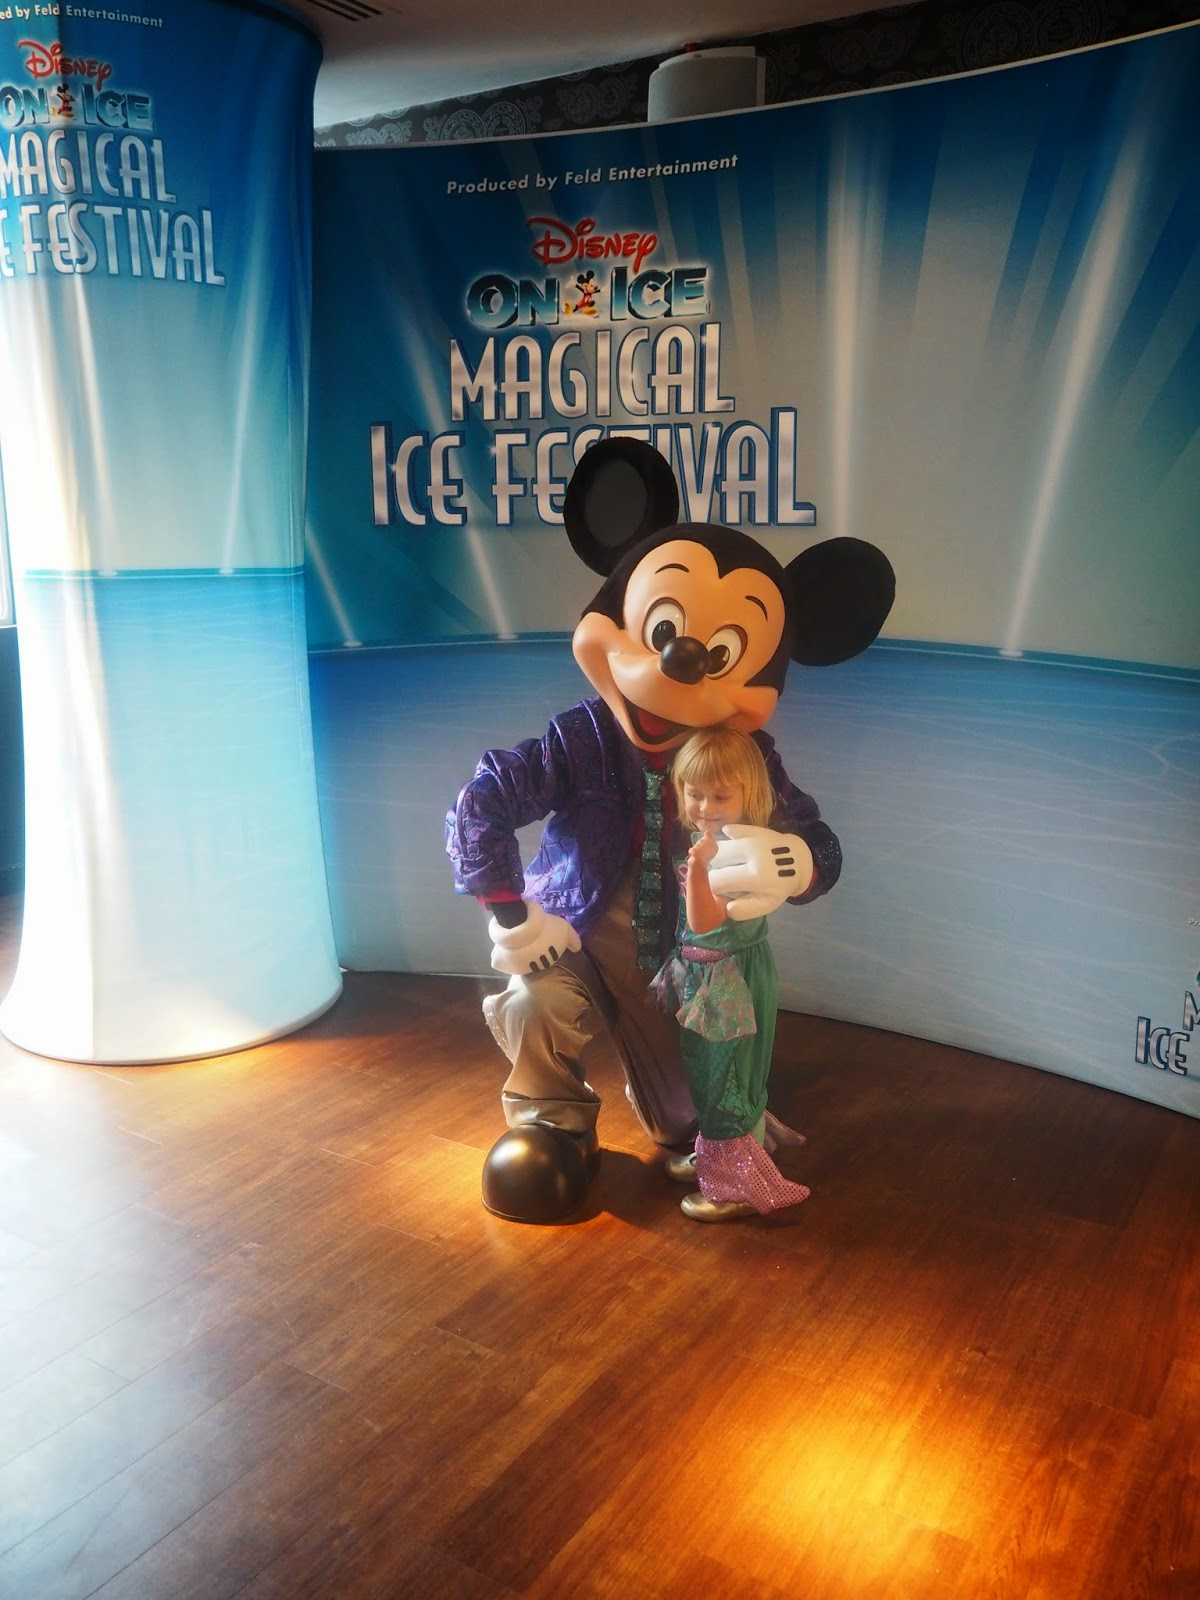 mamasVIb | V. I. BASH: 10 reasons why you should not miss Disney on Ice - Magical Ice Festival | disney on ice | magical ice festival | disney | ice skating | frozen | figure skaters | wmbely arena | press event | mama VIb | dishy on ice | skating | mickey mouse | meet and great | celebrity | red carpet | disney characters | anna dan elsa from frozen | kids event | nights out for kids | lonodn | event for children | days out